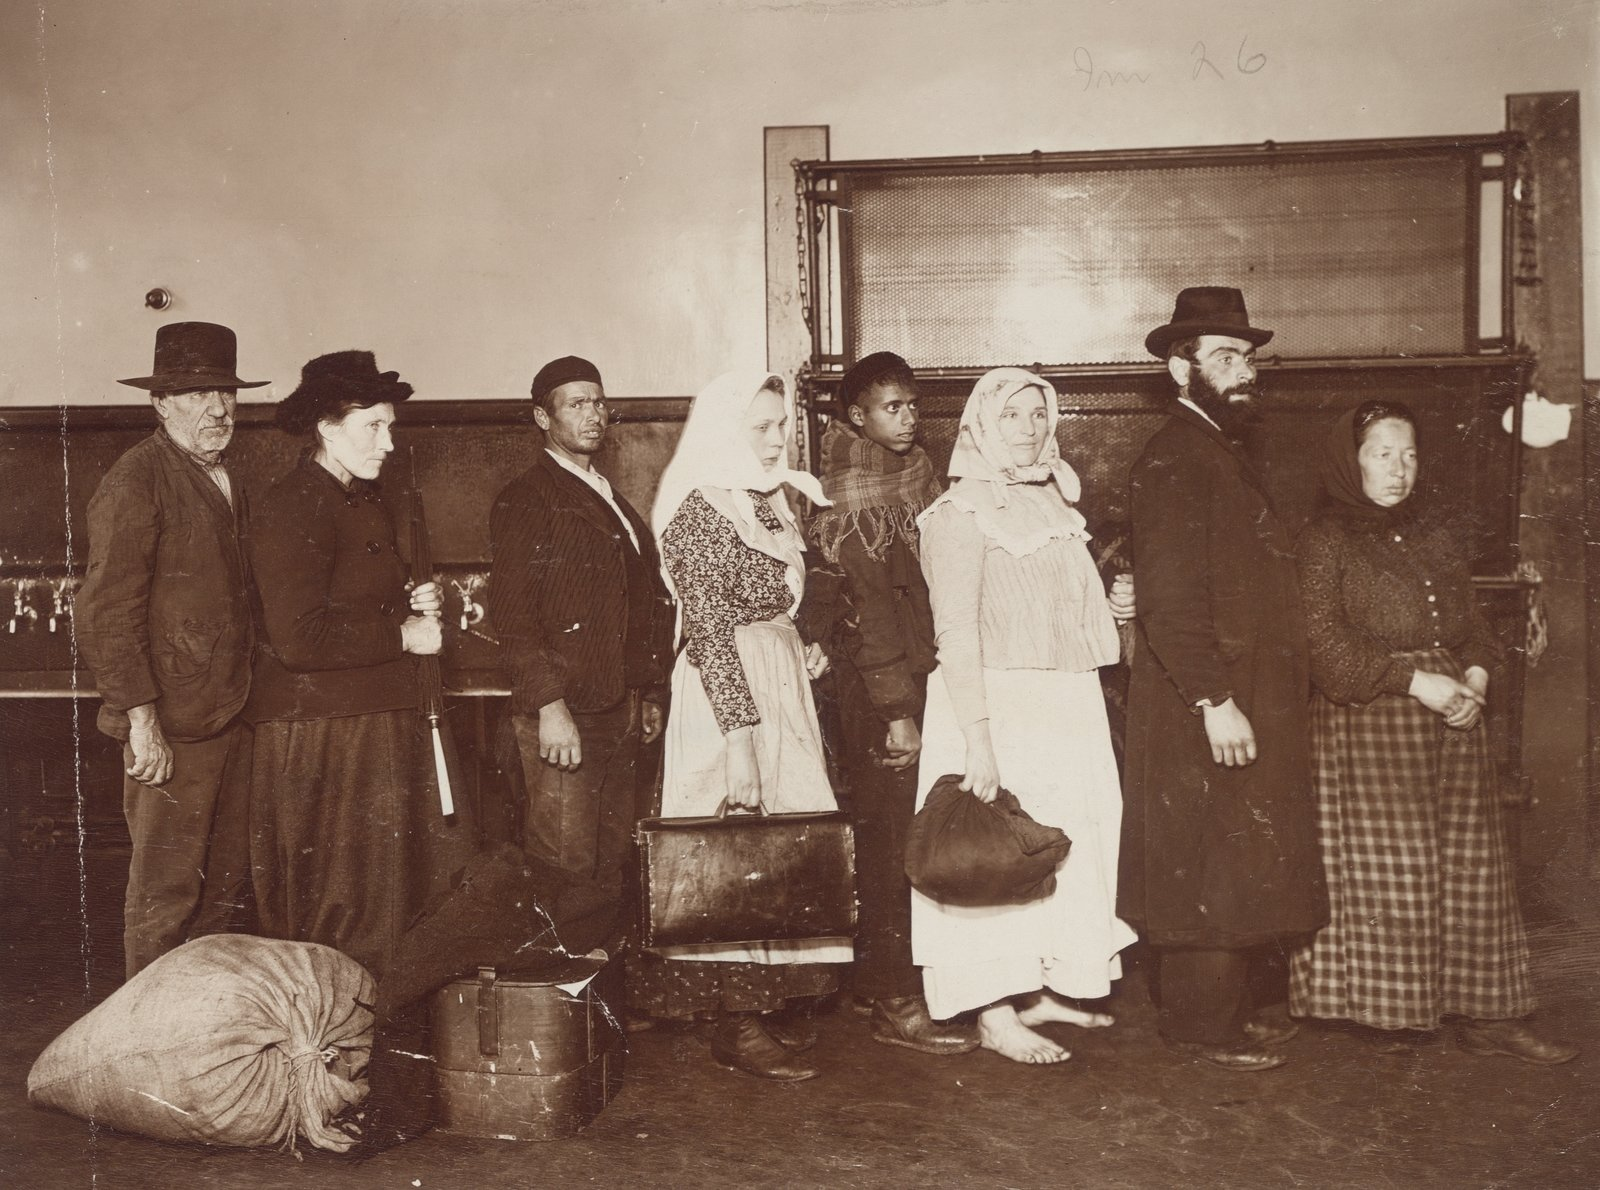 "Excluded Men and Women, Paupers, Convicts, Etc., Regulation of Immigration at the Port of Entry,"" United States Immigrant Station, New York City,, c. 1903 , J. H. Adams, Imaging Department © President and Fellows of Harvard College, In Copyright"